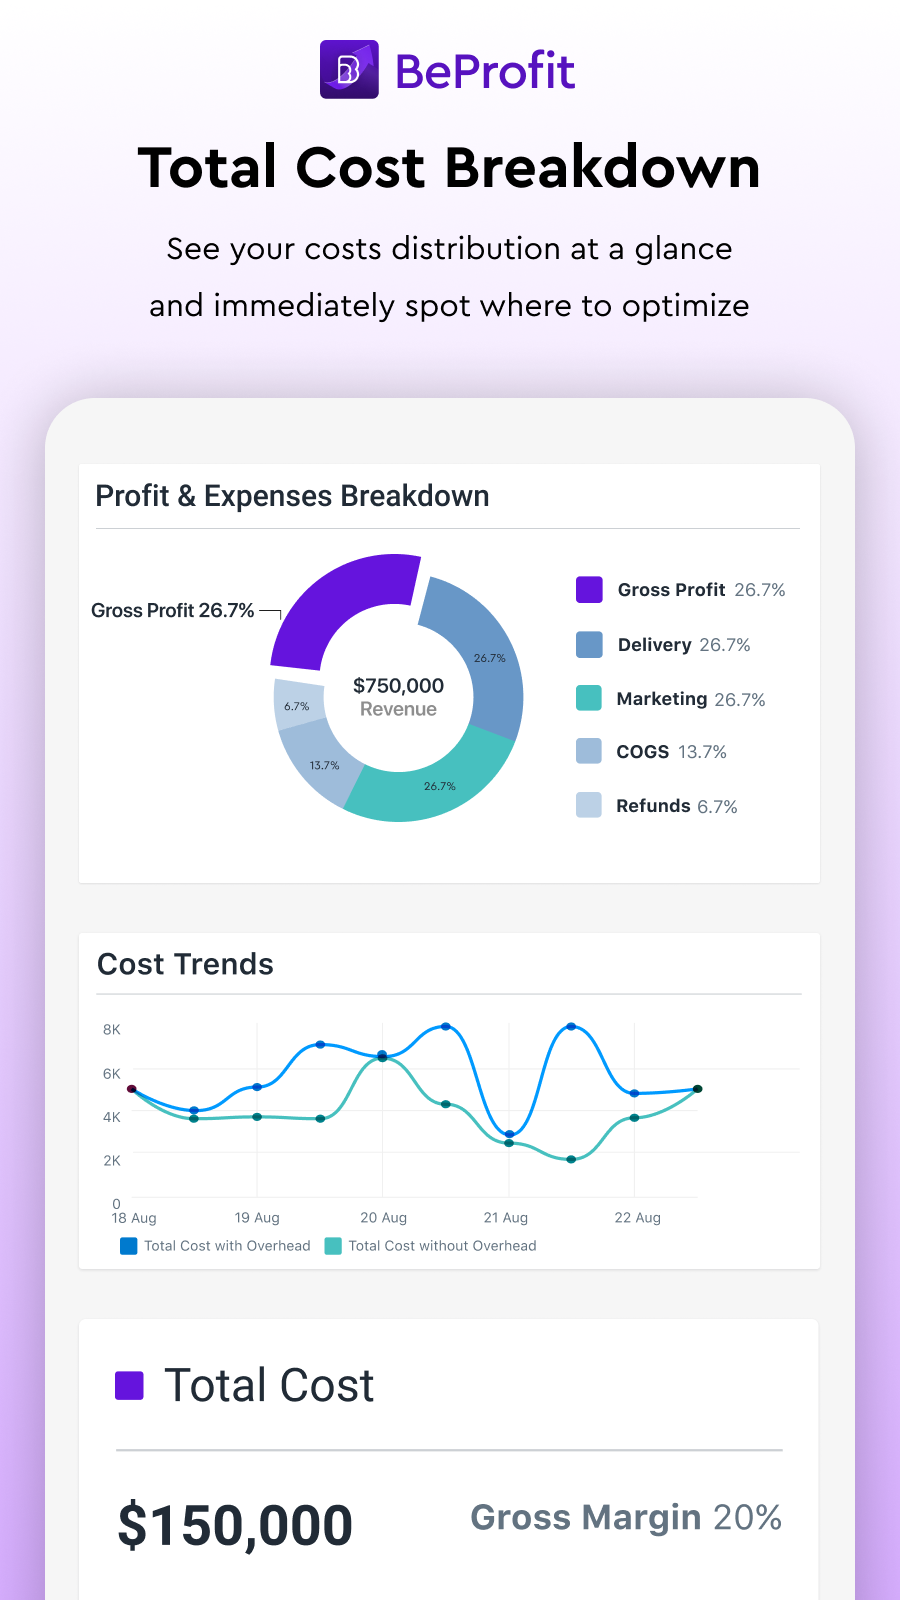 See distribution of all expenses & where to optimize at a glance